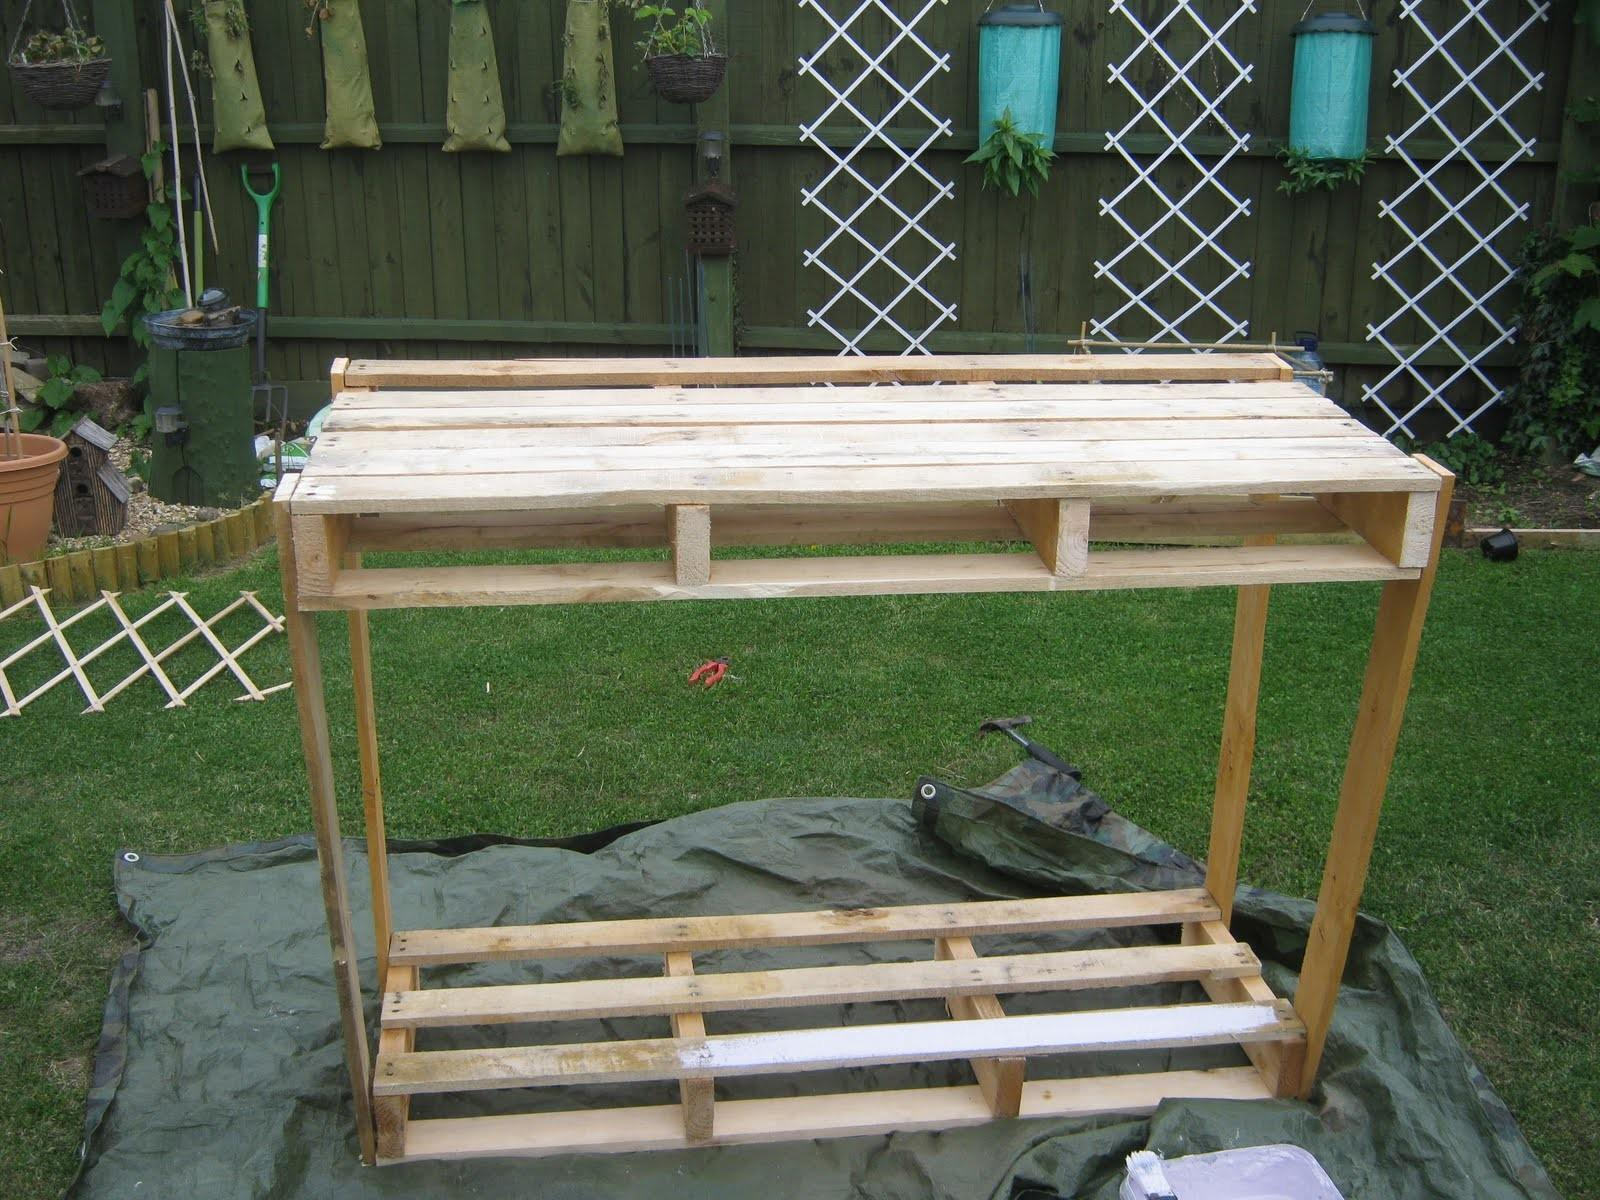 Mishaps Making Wooden Pallet Potting Bench